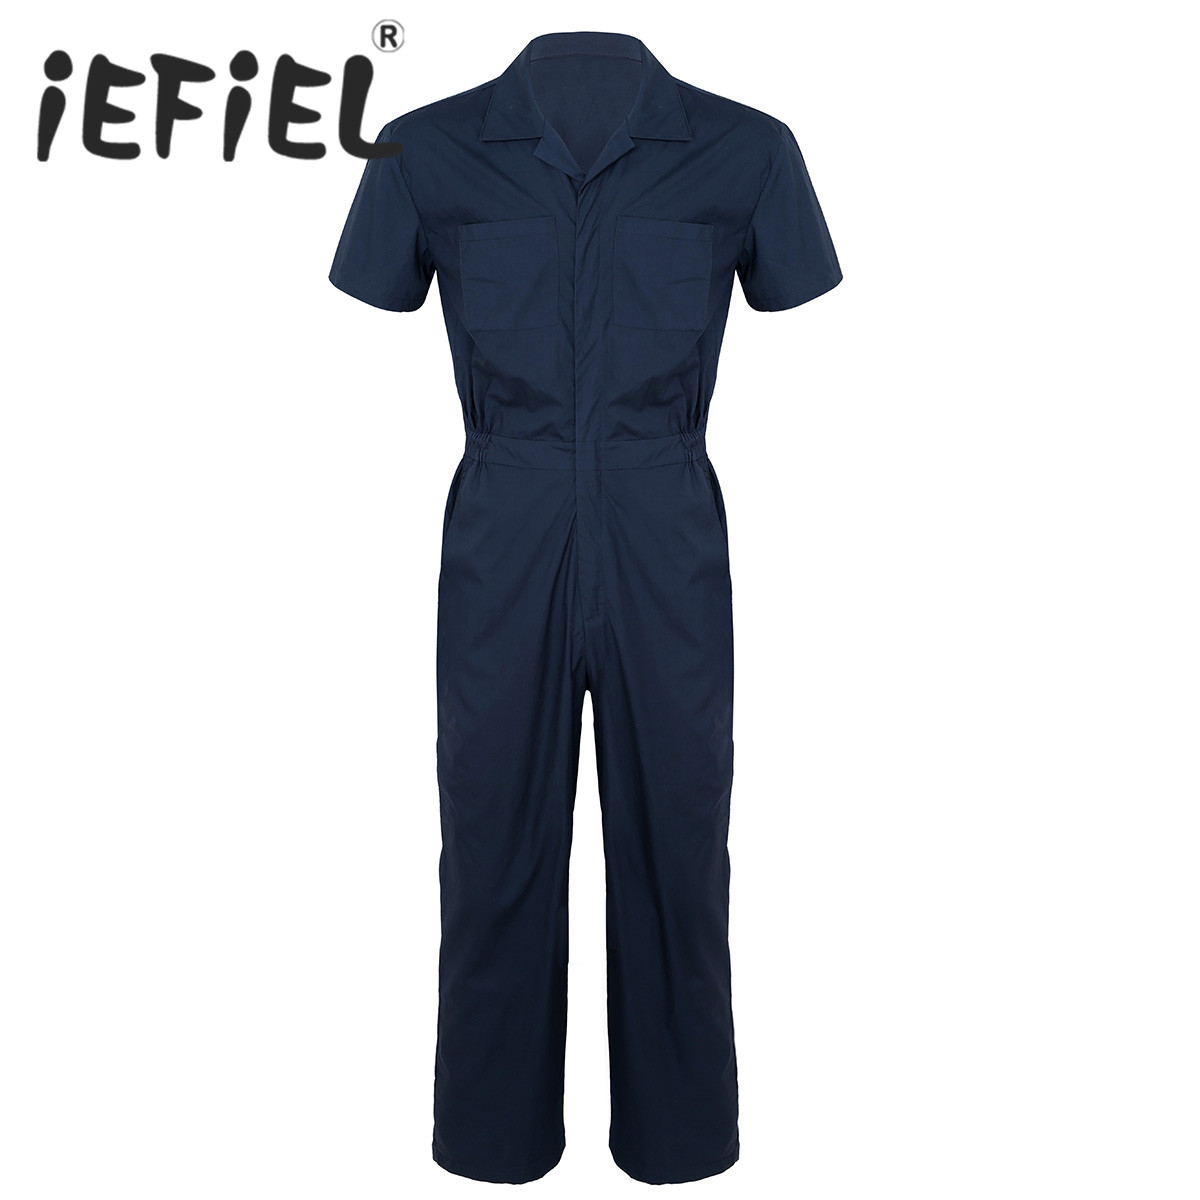 Male Daily Work Coverall Mens One Piece Turn Down Collar Short Sleeves Zipper Front Loose Jumpsuit Rompers Suits with Pockets